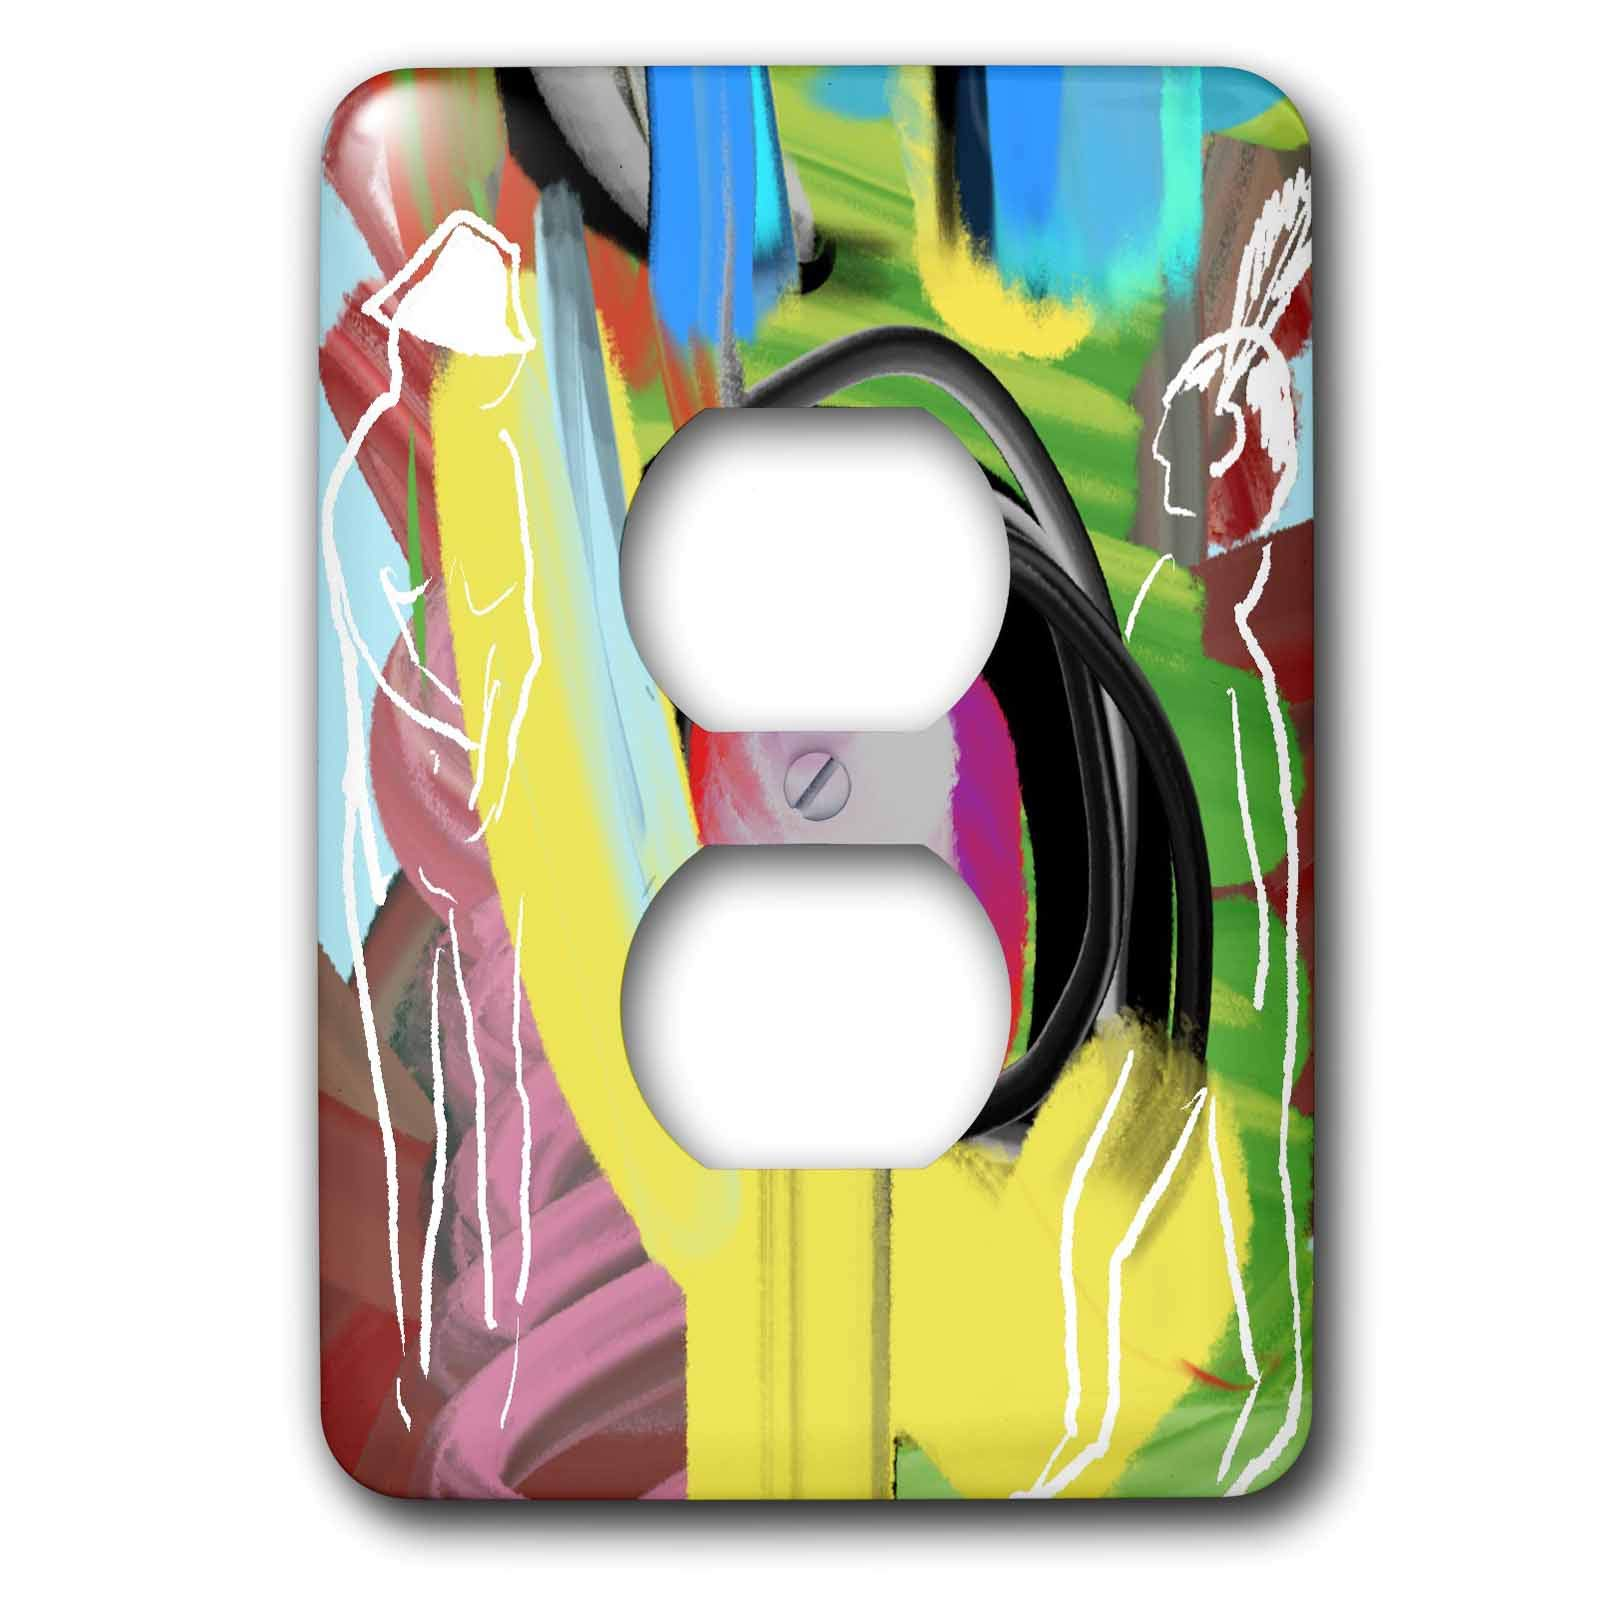 3dRose Lasha Beraia - Minimalist - Figures of Women and Man - minimalist drawing on abstract background - Light Switch Covers - 2 plug outlet cover (lsp_288678_6)